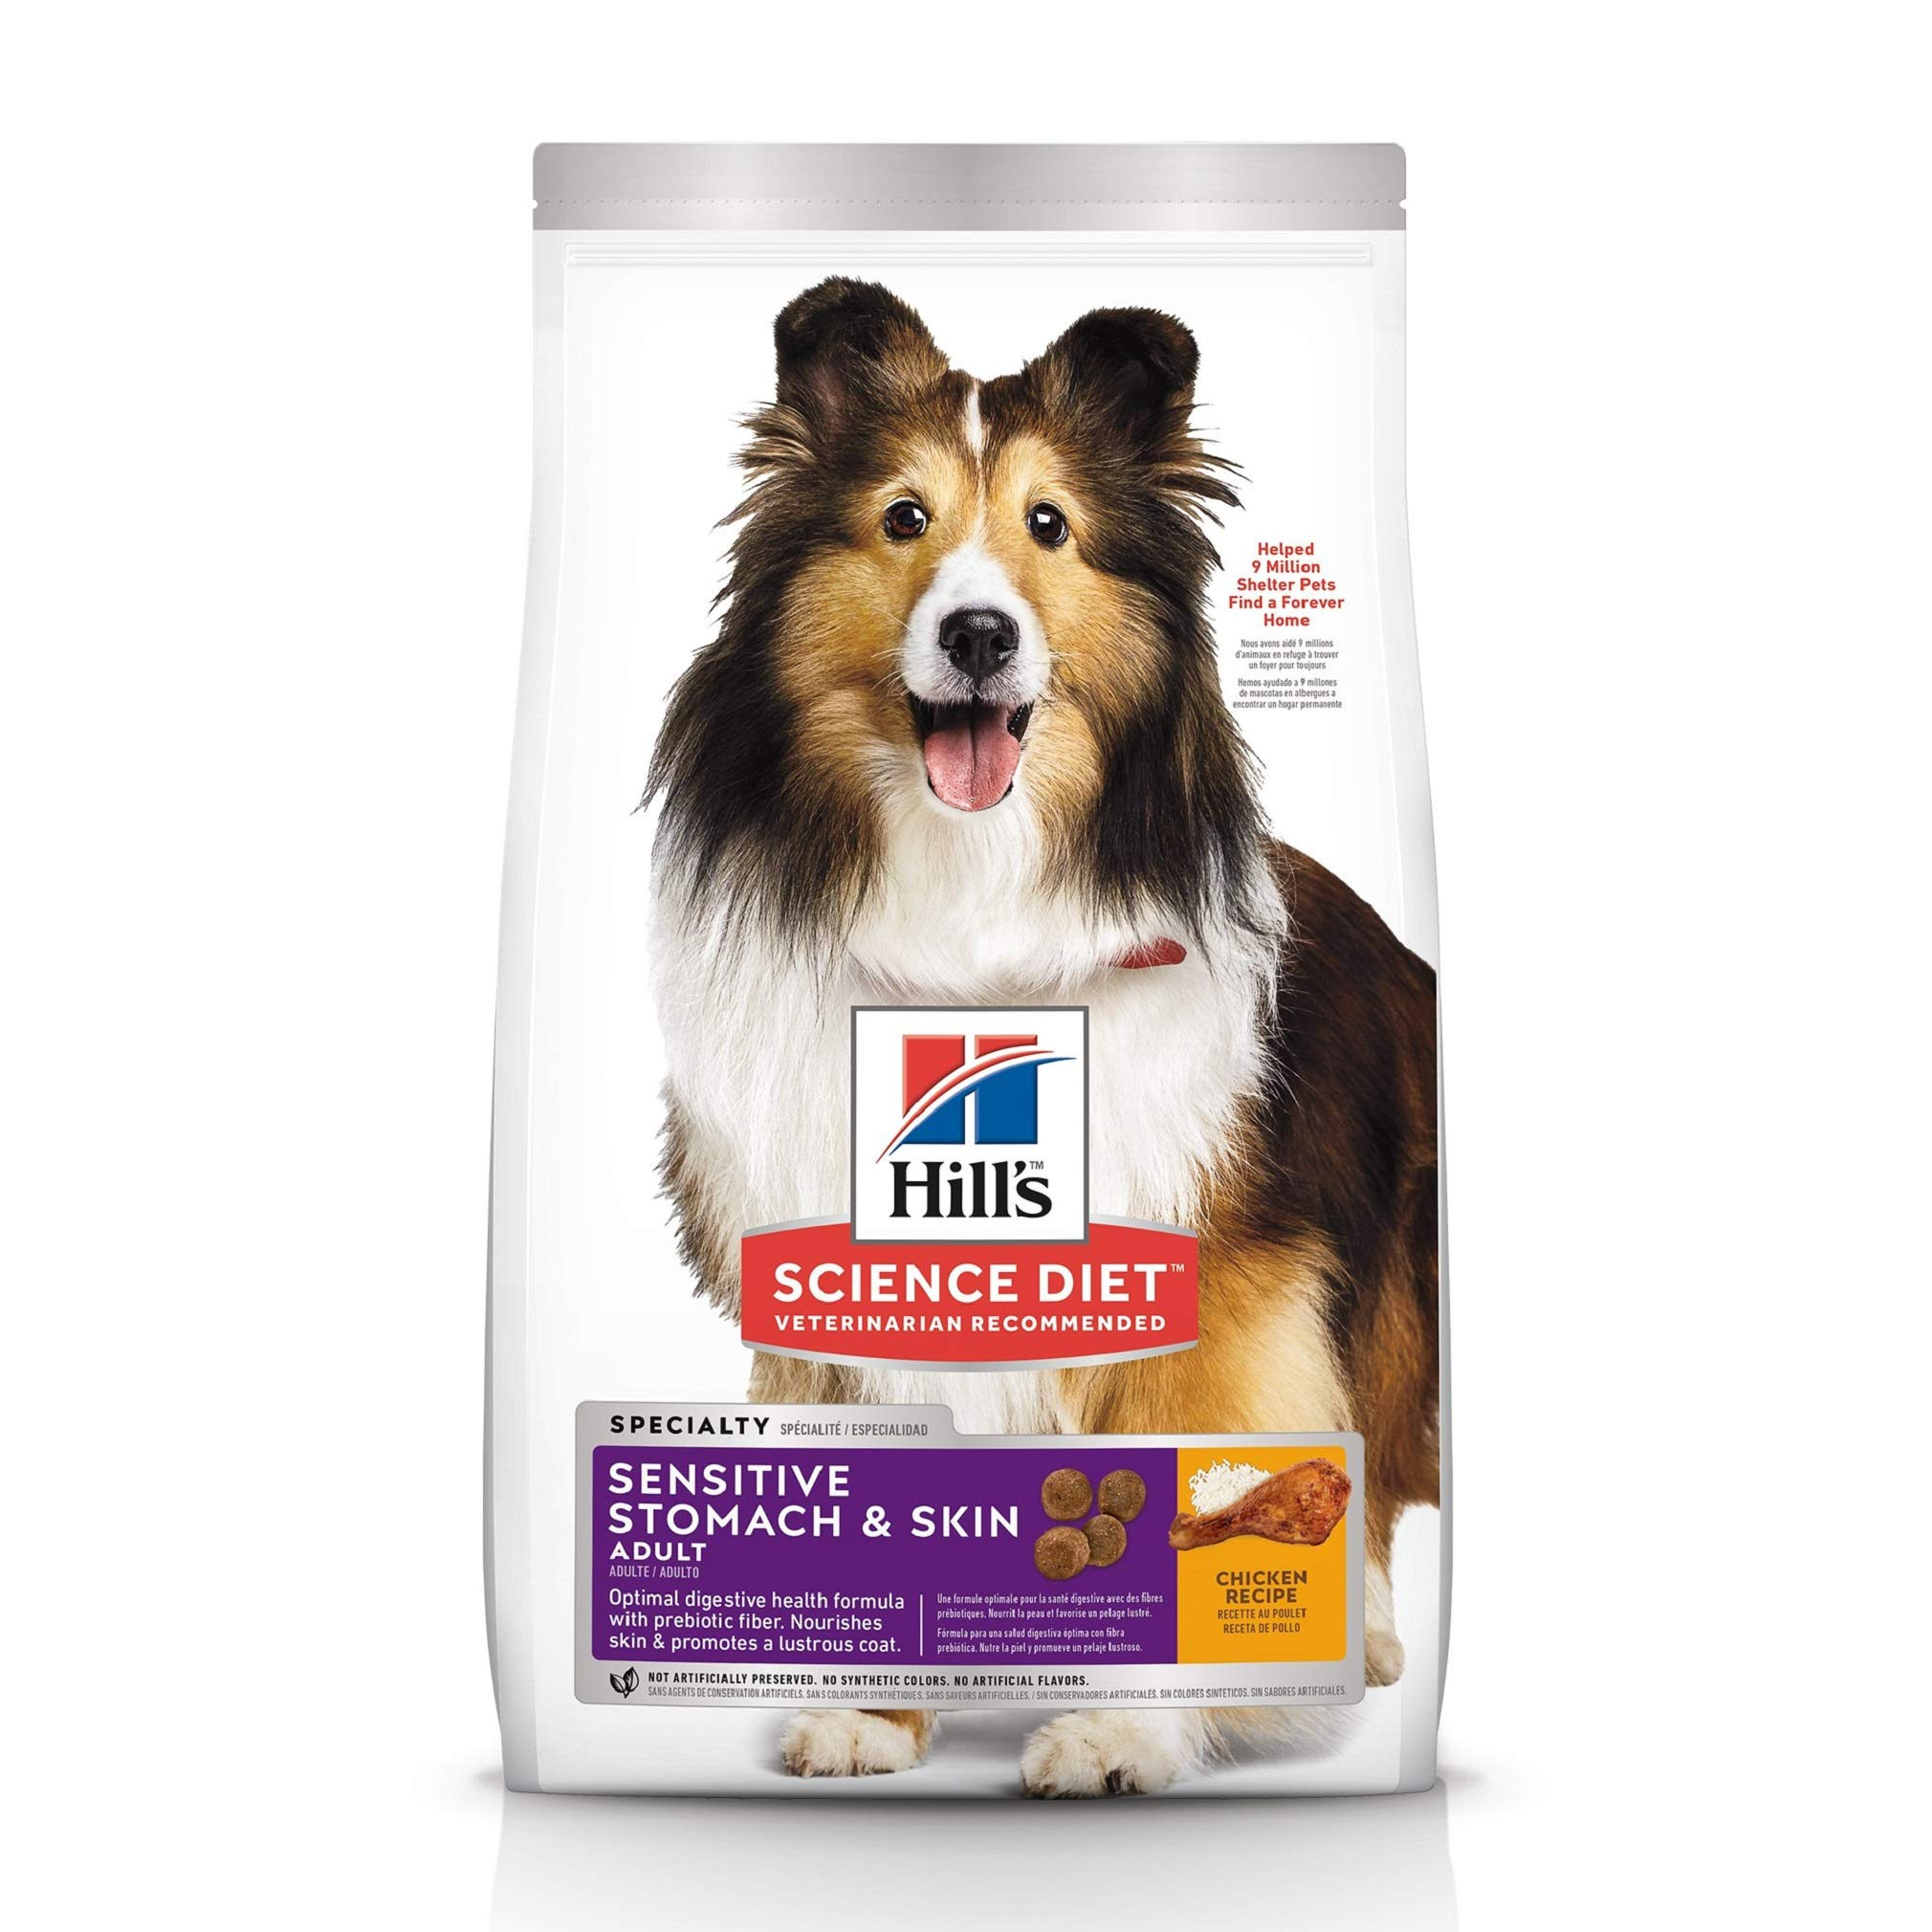 Hill's Science Diet Dry Dog Food, Adult, Sensitive Stomach & Skin, Chicken Recipe, 30 lb Bag by Hill's Science Diet